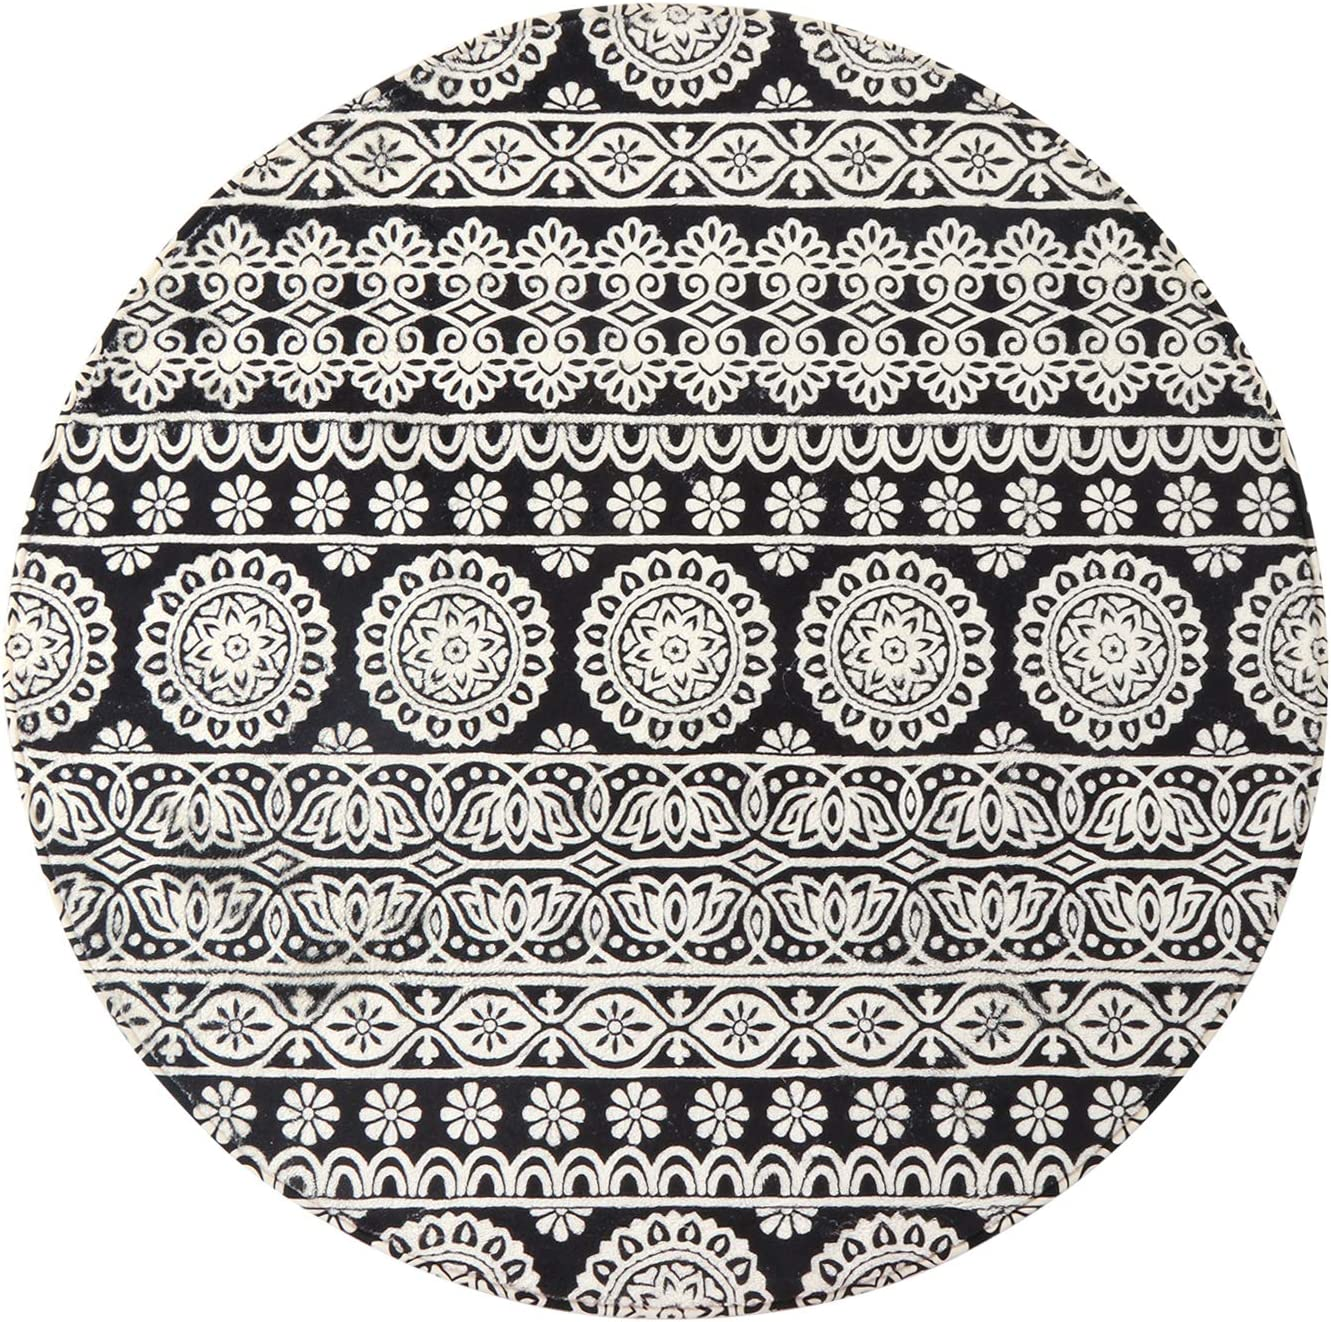 Mandala Round Area Rug 3.3' Diameter, KIMODE Vintage Soft Faux Wool Area Rug Accent Distressed Collection Non-Slip Machine Washable Indoor Throw Rugs Floor Carpet for Bedrooms Living Room Laundry Room